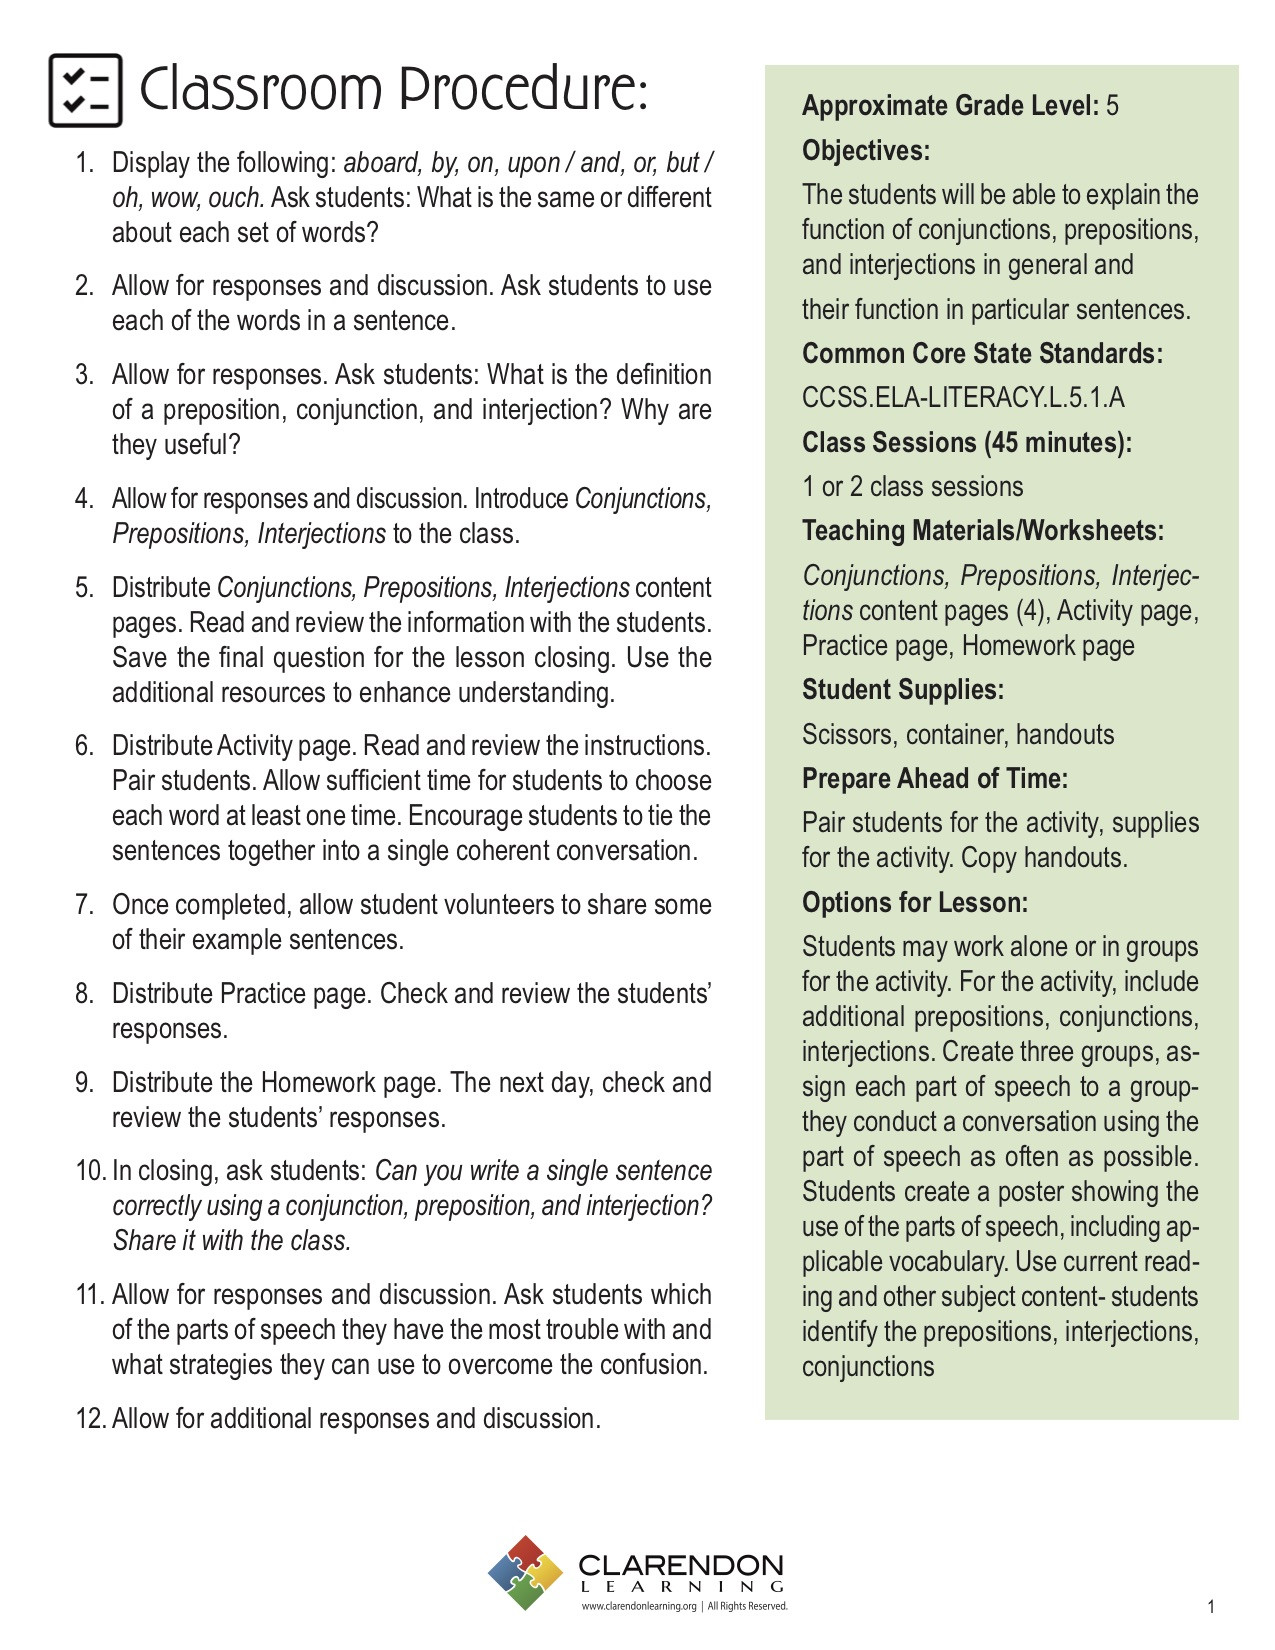 Conjunctions Worksheet 5th Grade Conjunctions Prepositions Interjections Lesson Plan